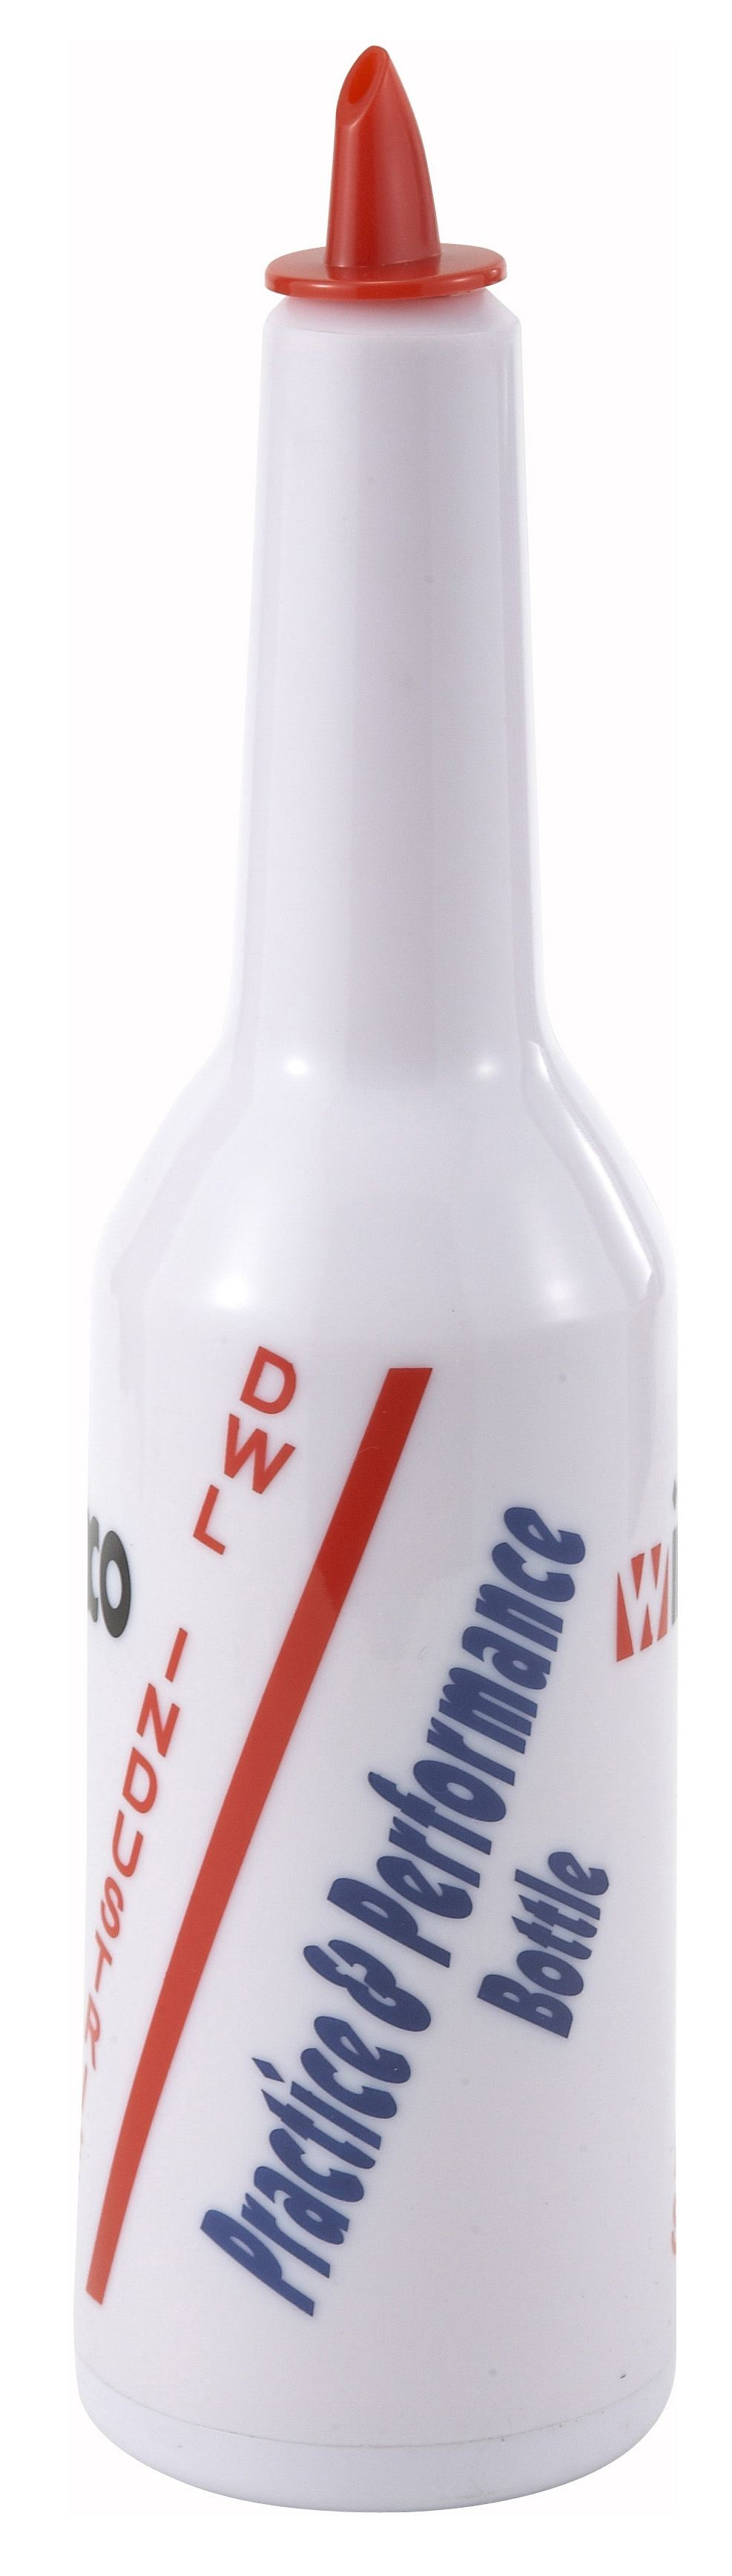 White Flair Bottle - 3 X 11-1/5